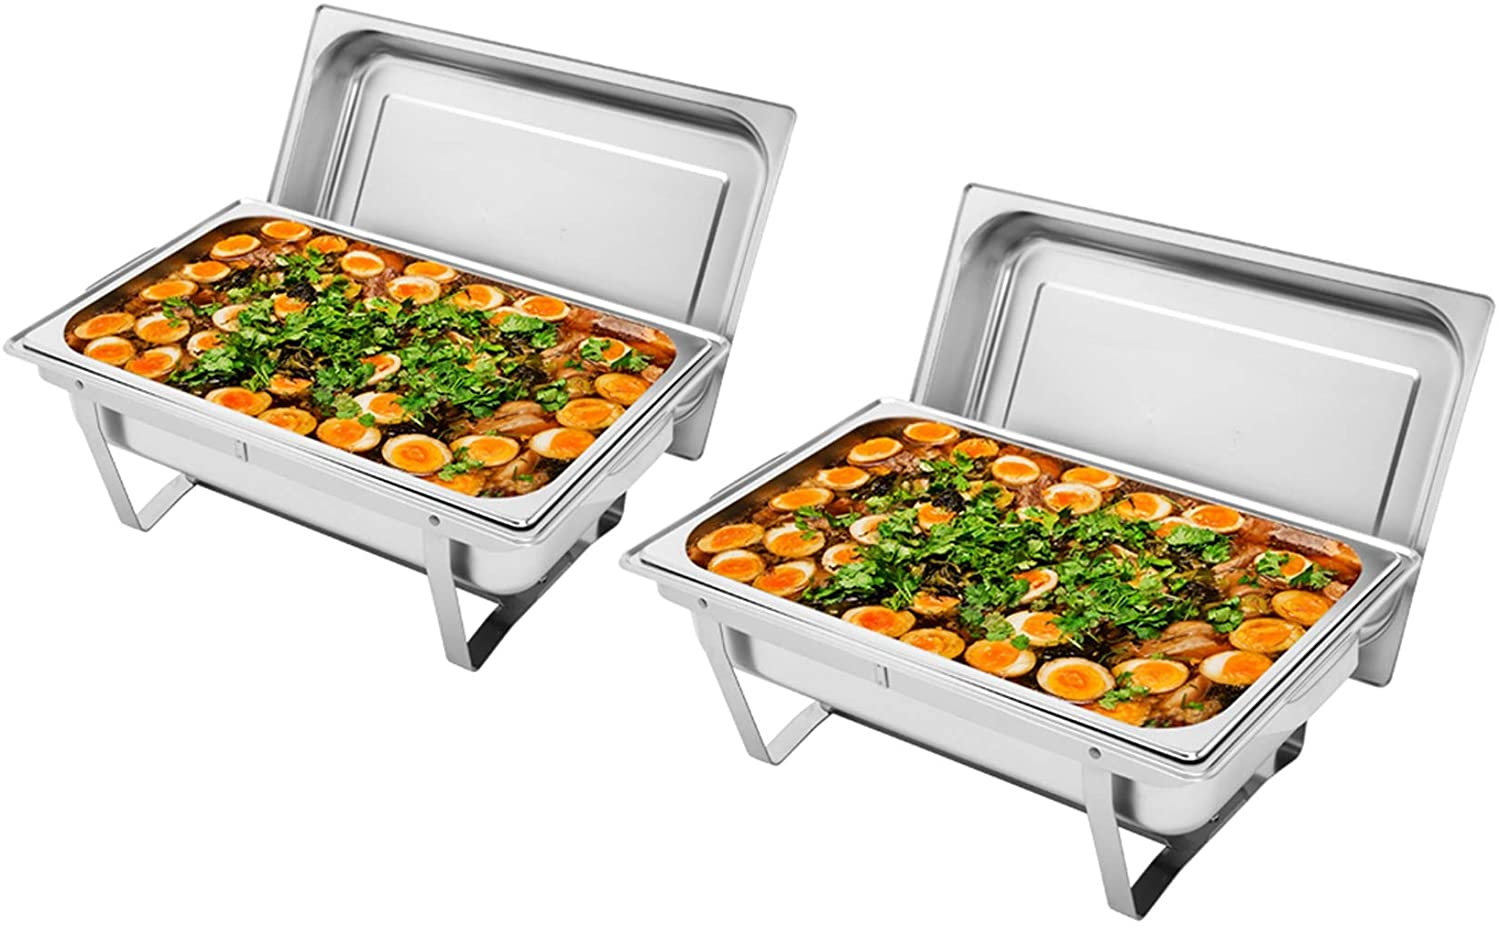 9L-12 Single Pot Two Set Stainless Steel Rectangular Buffet Stove Food Buffets Food Warmer for Parties, Chafing Dish